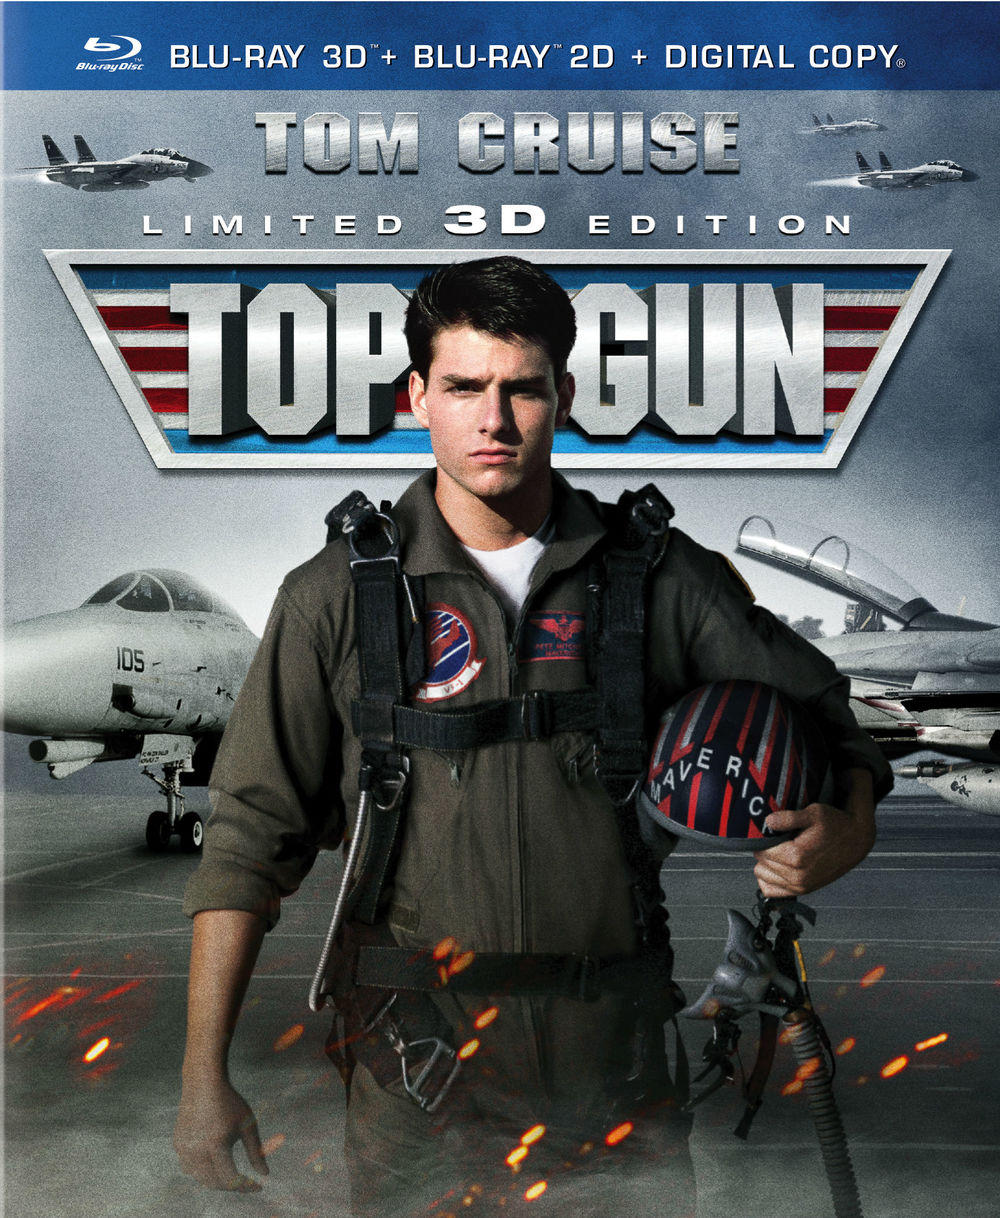 Dr Seuss The Lorax Movie Script: TOP GUN Blu-ray 3D Enters The Danger Zone In February